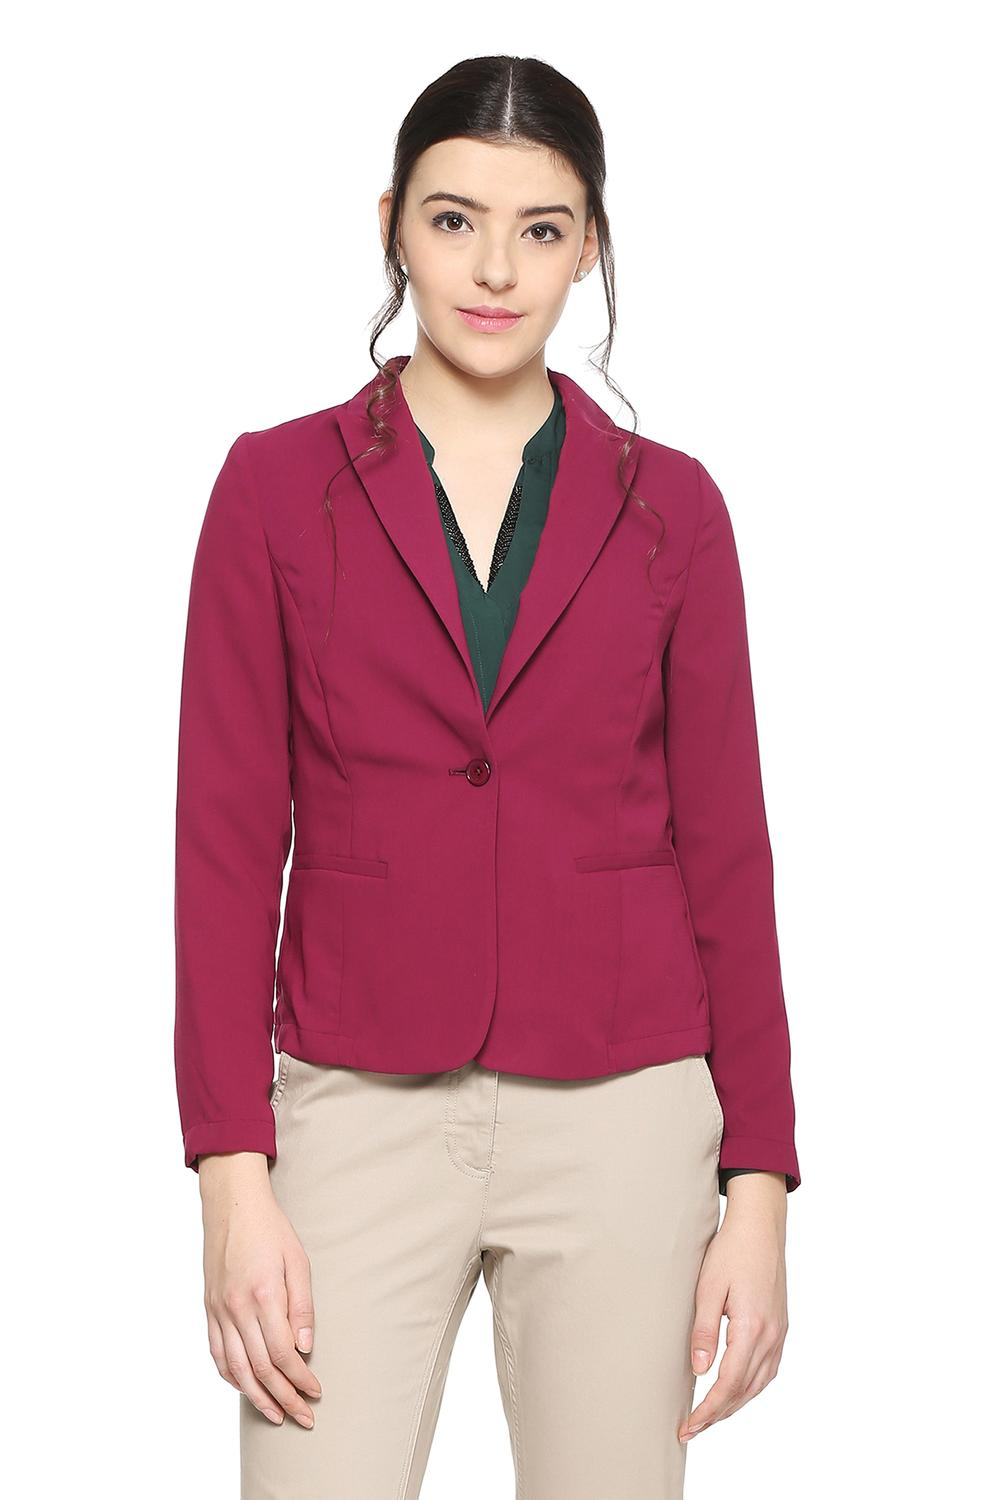 Back To Search Resultshome Hearty Stylish Black Blue Burgundy Plaid Pant Suits Women Office Lady Business Work Pants Blazer Set Jacket Trousers Female Clothing